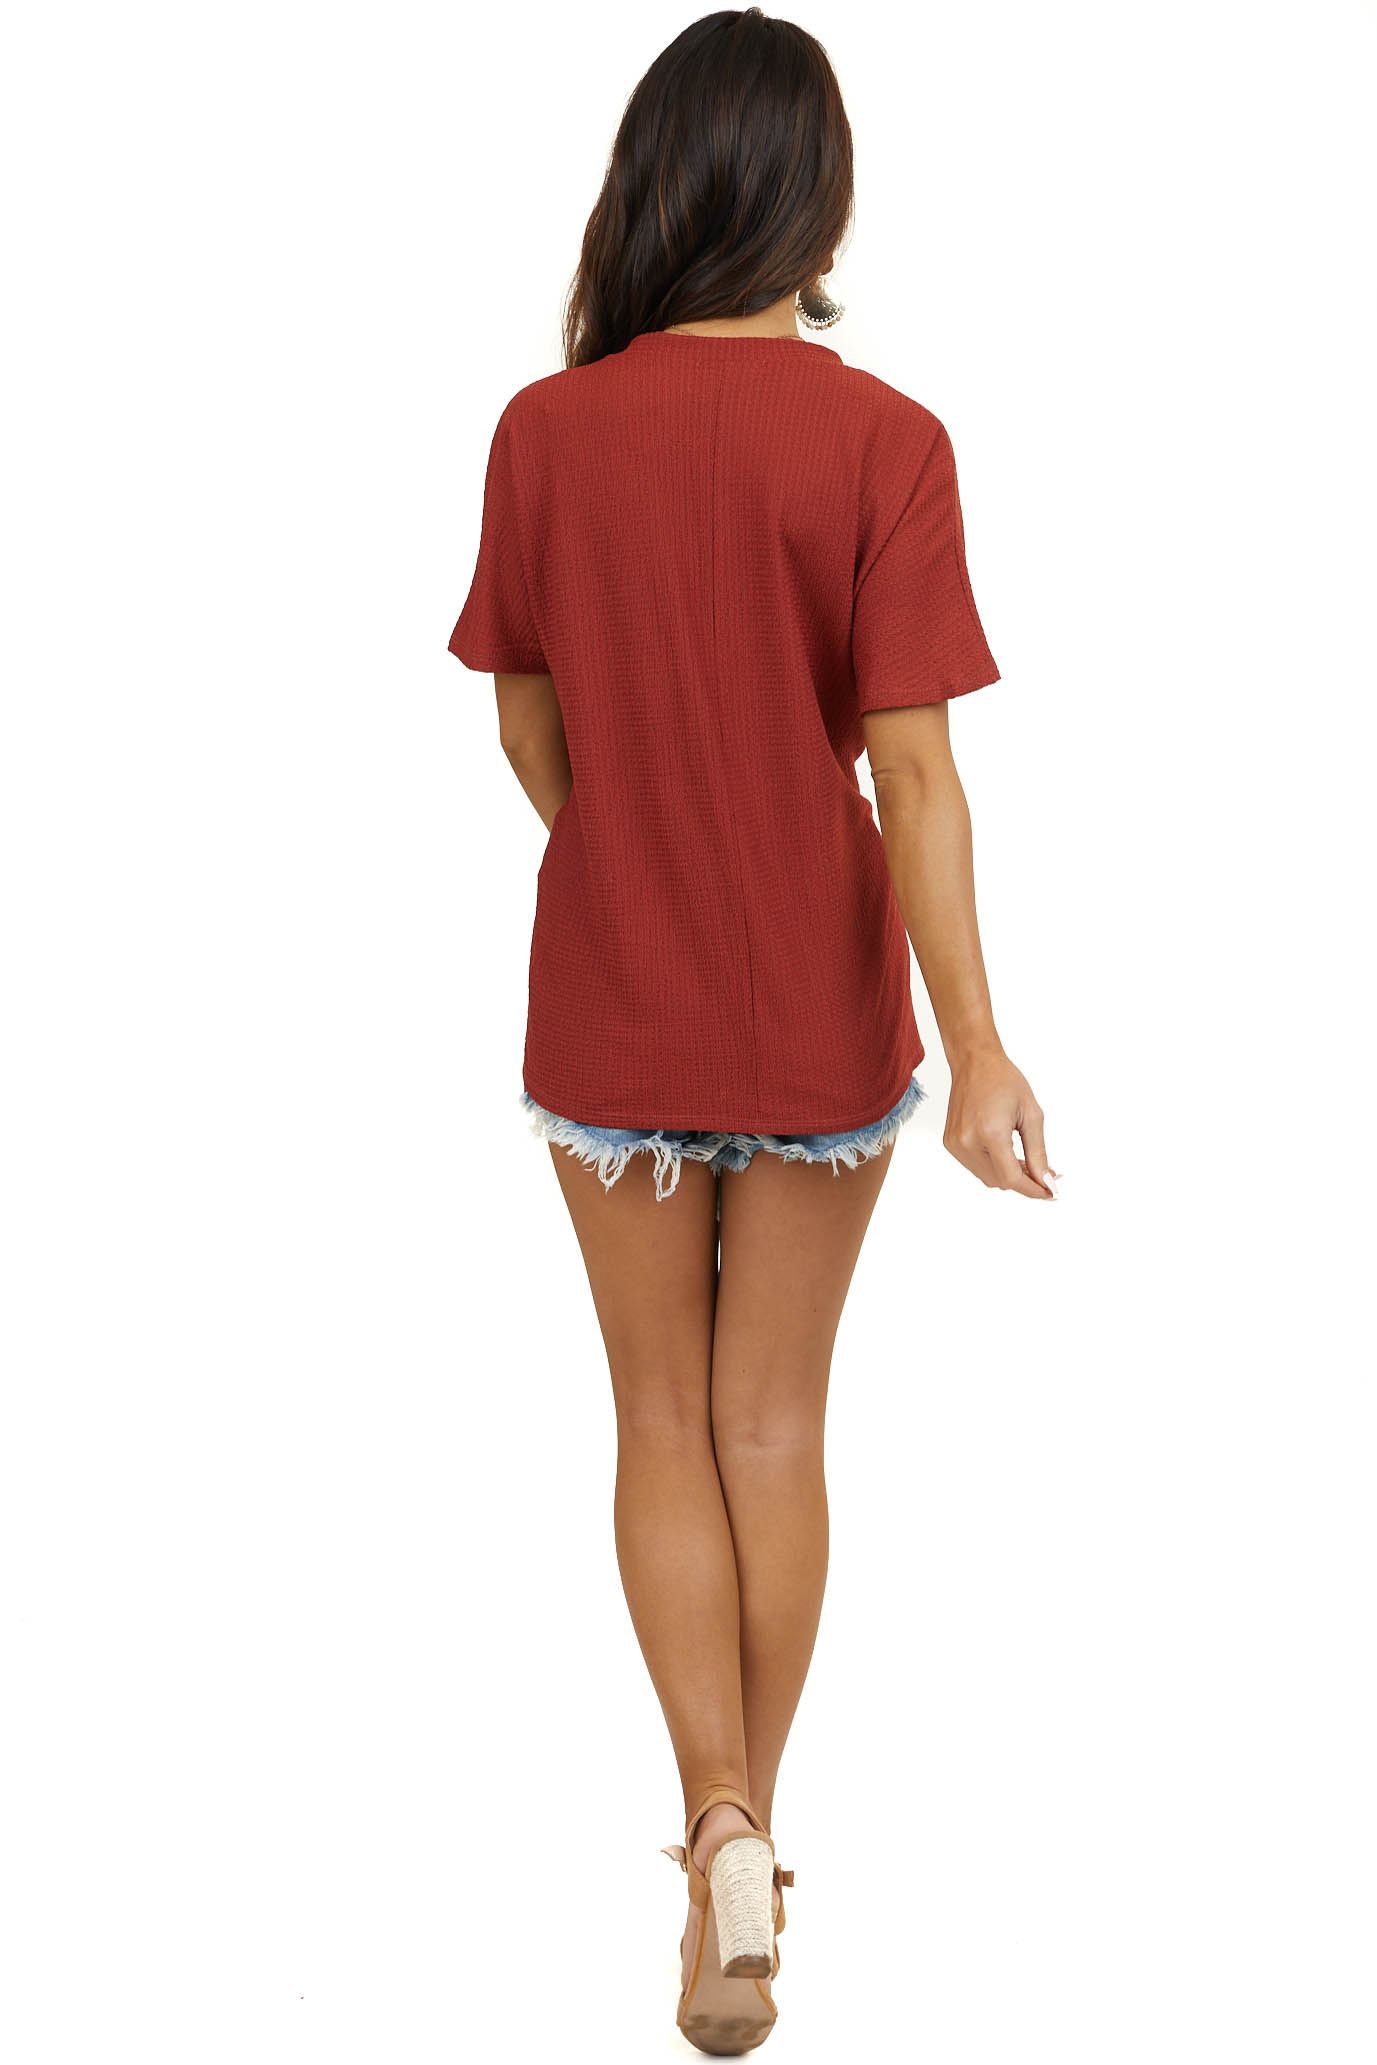 Dark Rust V Neck Top with Short Sleeves and Front Pocket